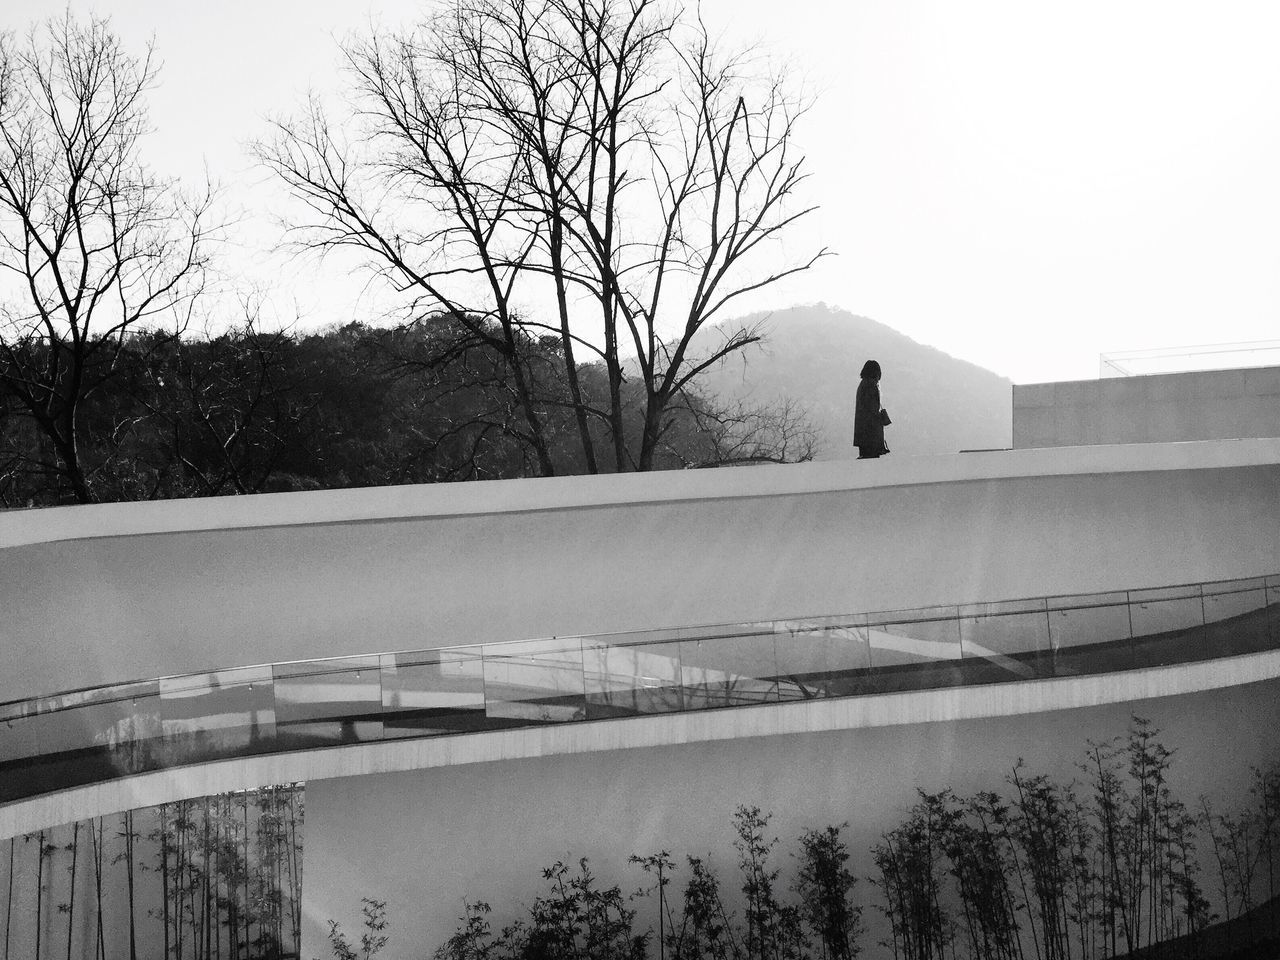 Architecture Built Structure Leisure Activity Walking Around Walking On The Roof Rooftop Monochrome Beauty In Nature One Person Outdoors Black & White Black And White Blackandwhite Black&white Tree Trees Hill Mountain